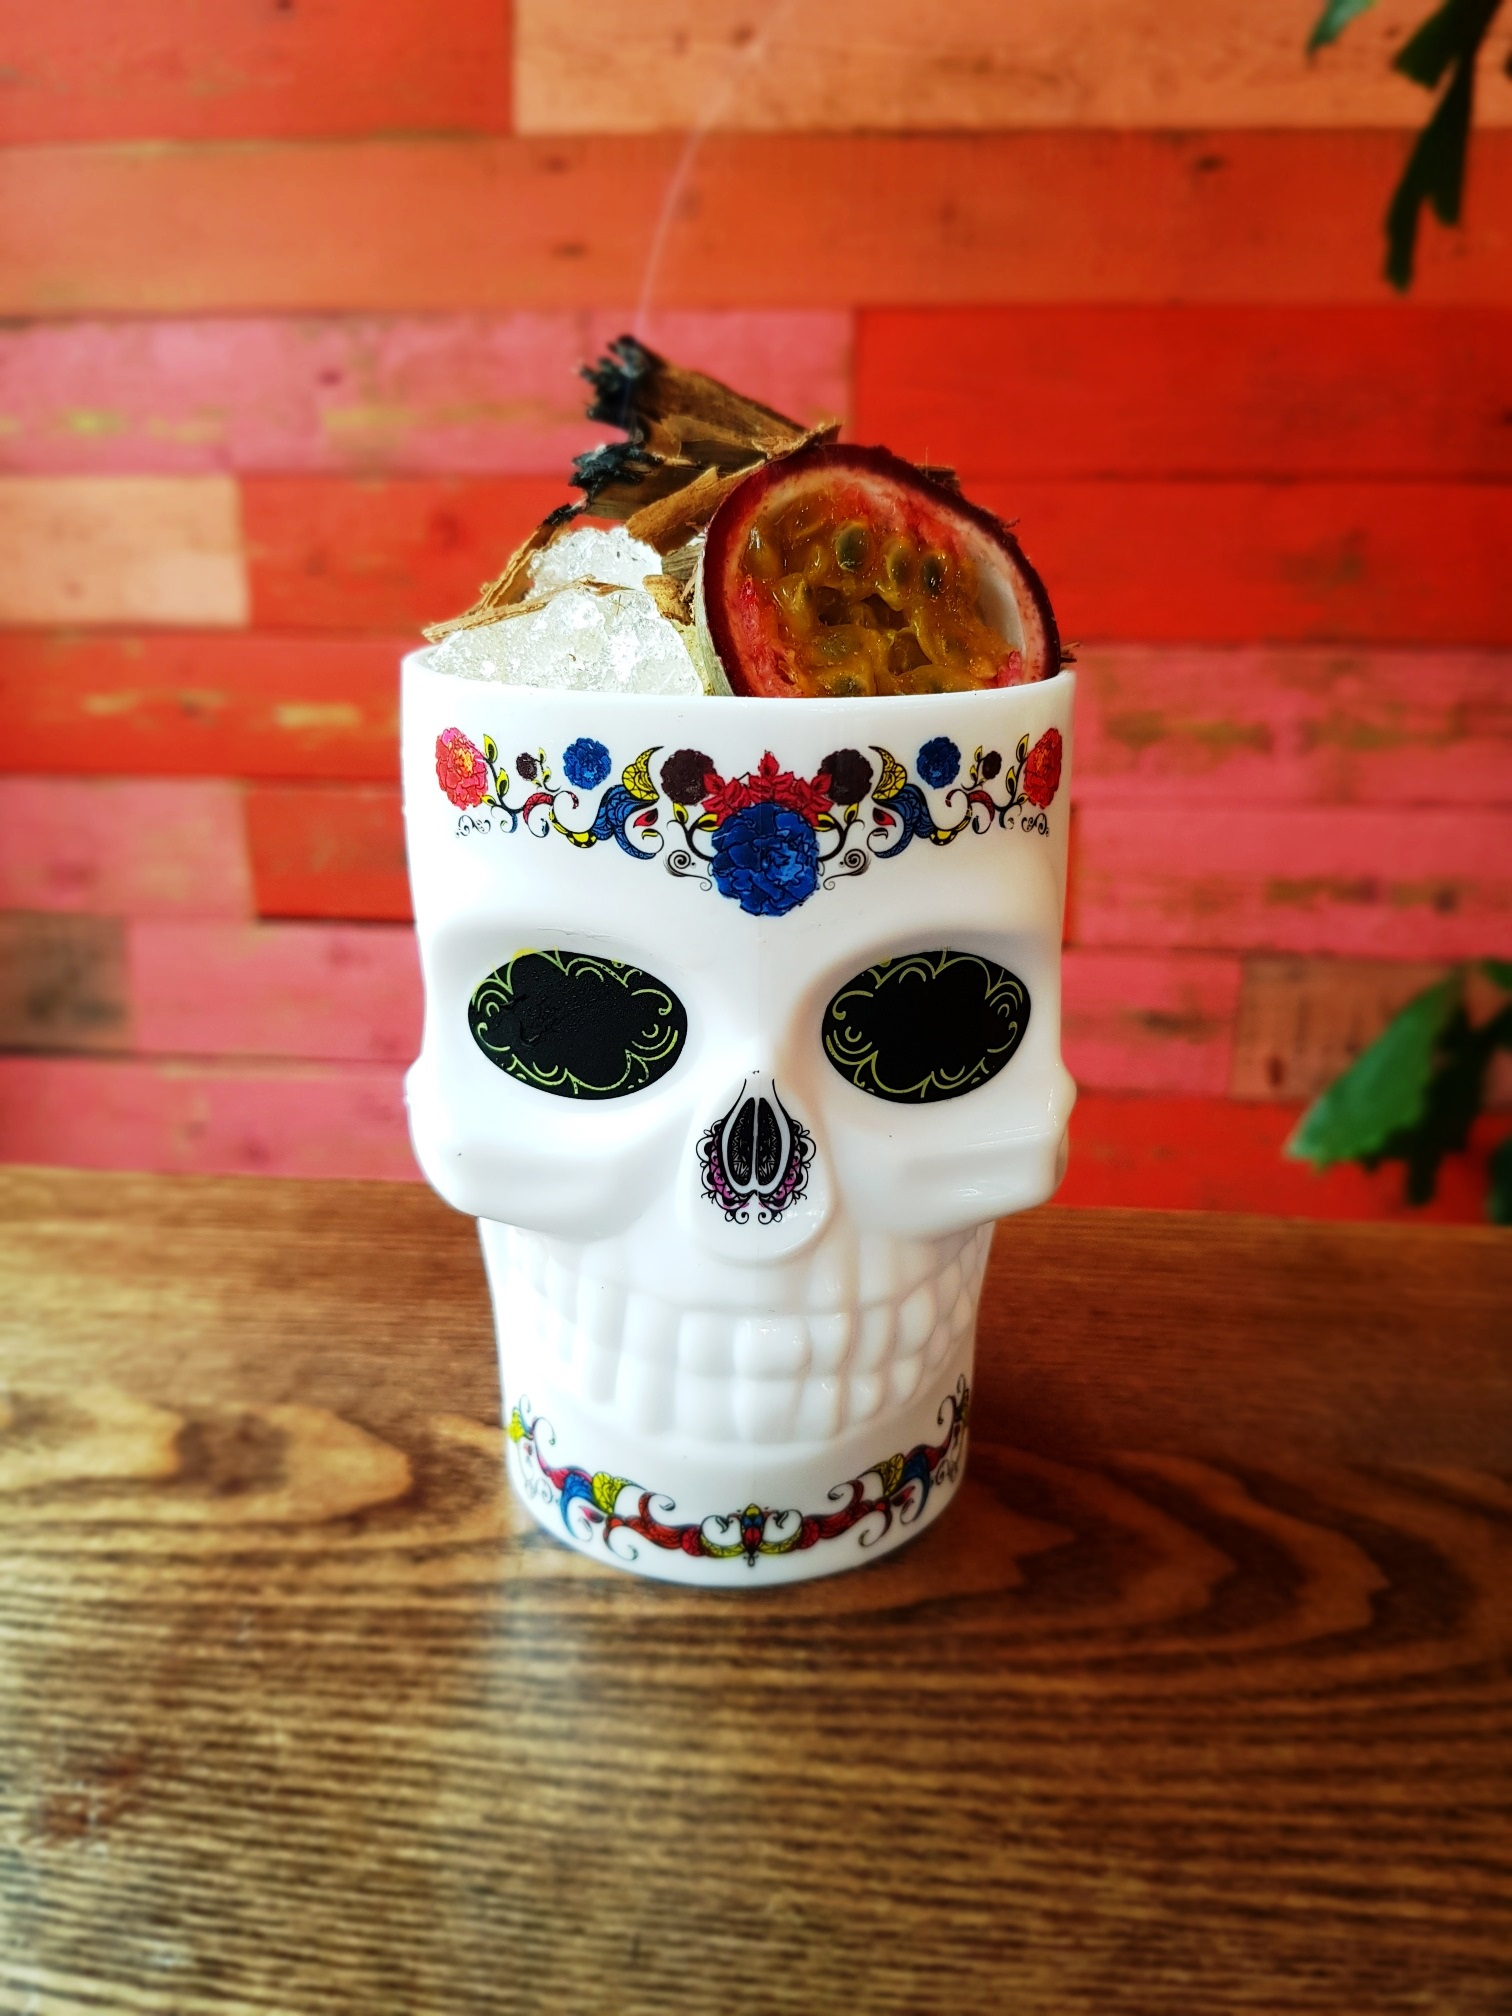 SPOOKY TREATS AT LAS IGUANAS FOR HALLOWEEN  DAY OF THE DEAD